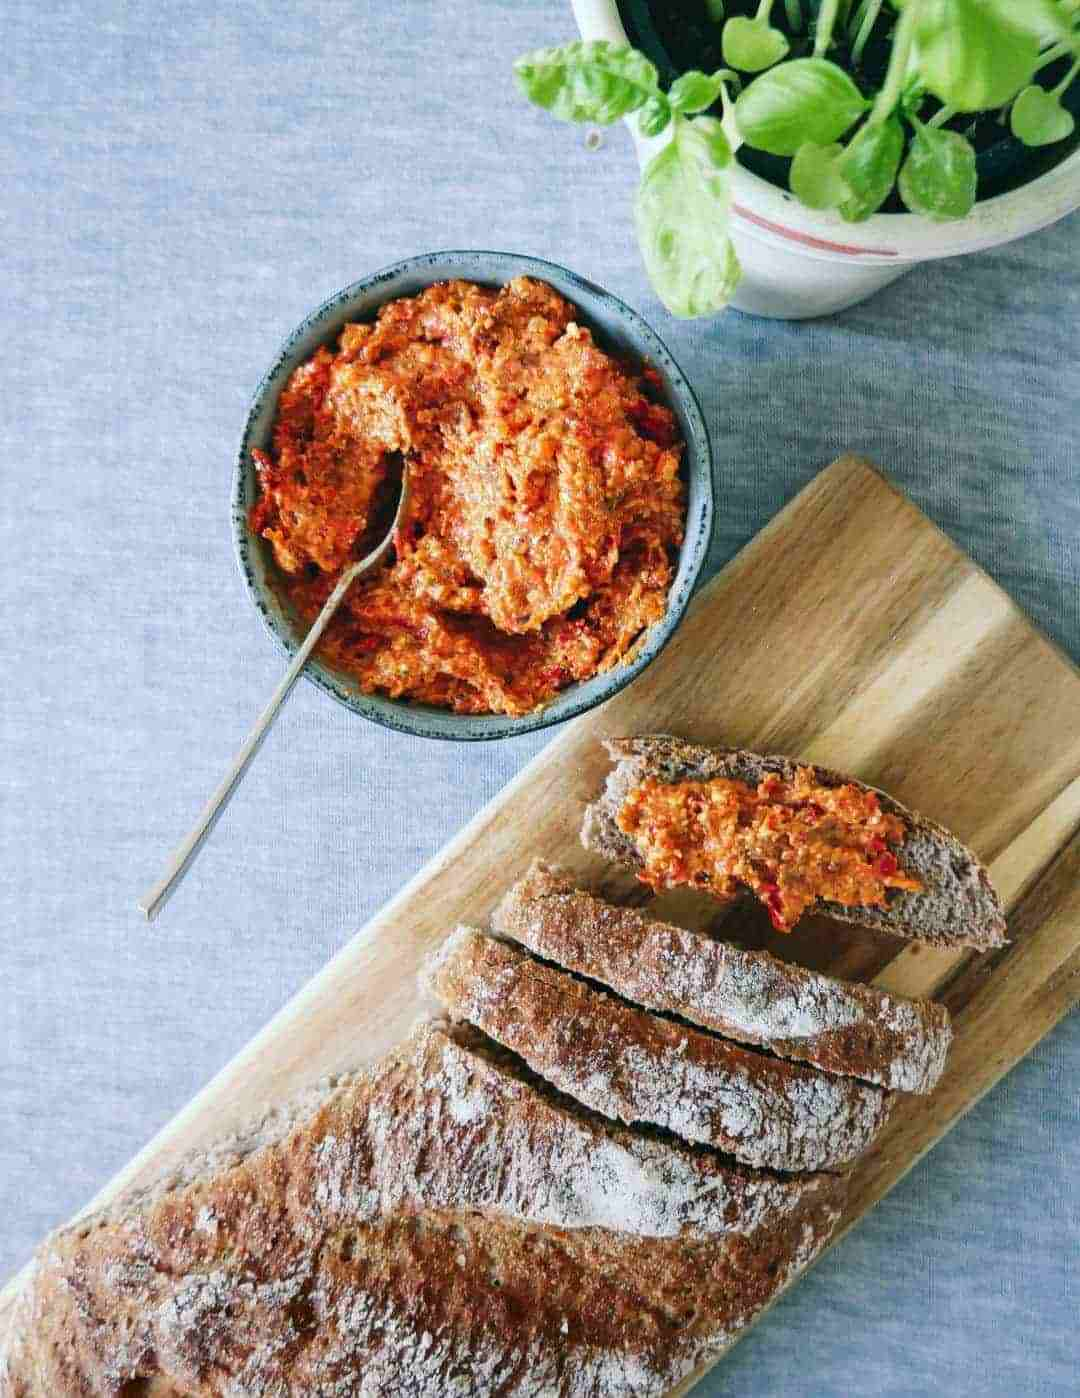 Romesco sauce – spanish pesto